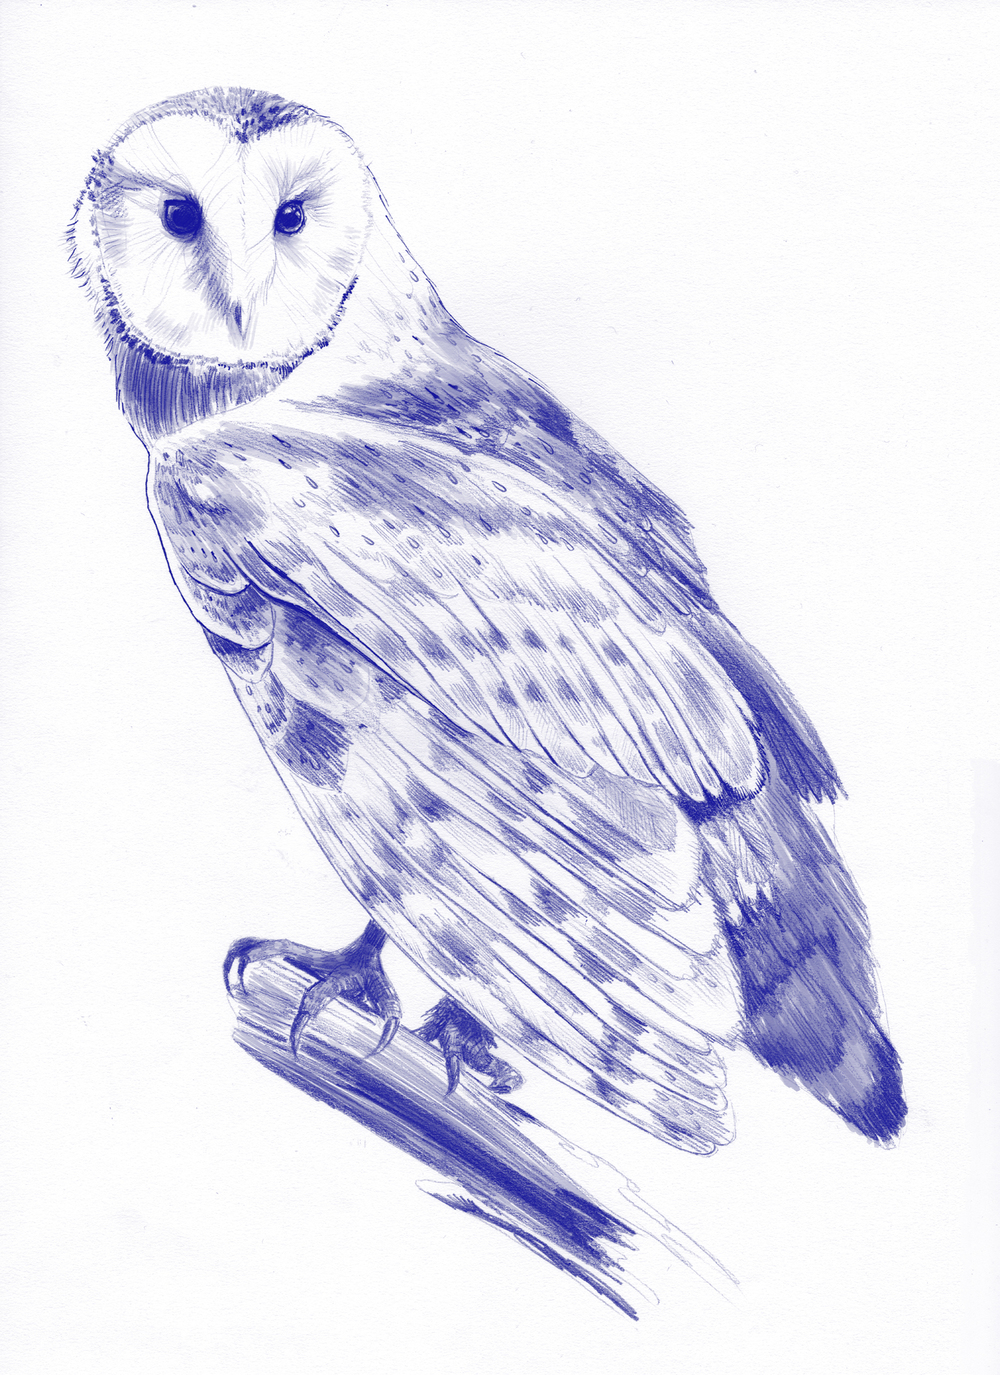 fig 3. Barn owl illustration